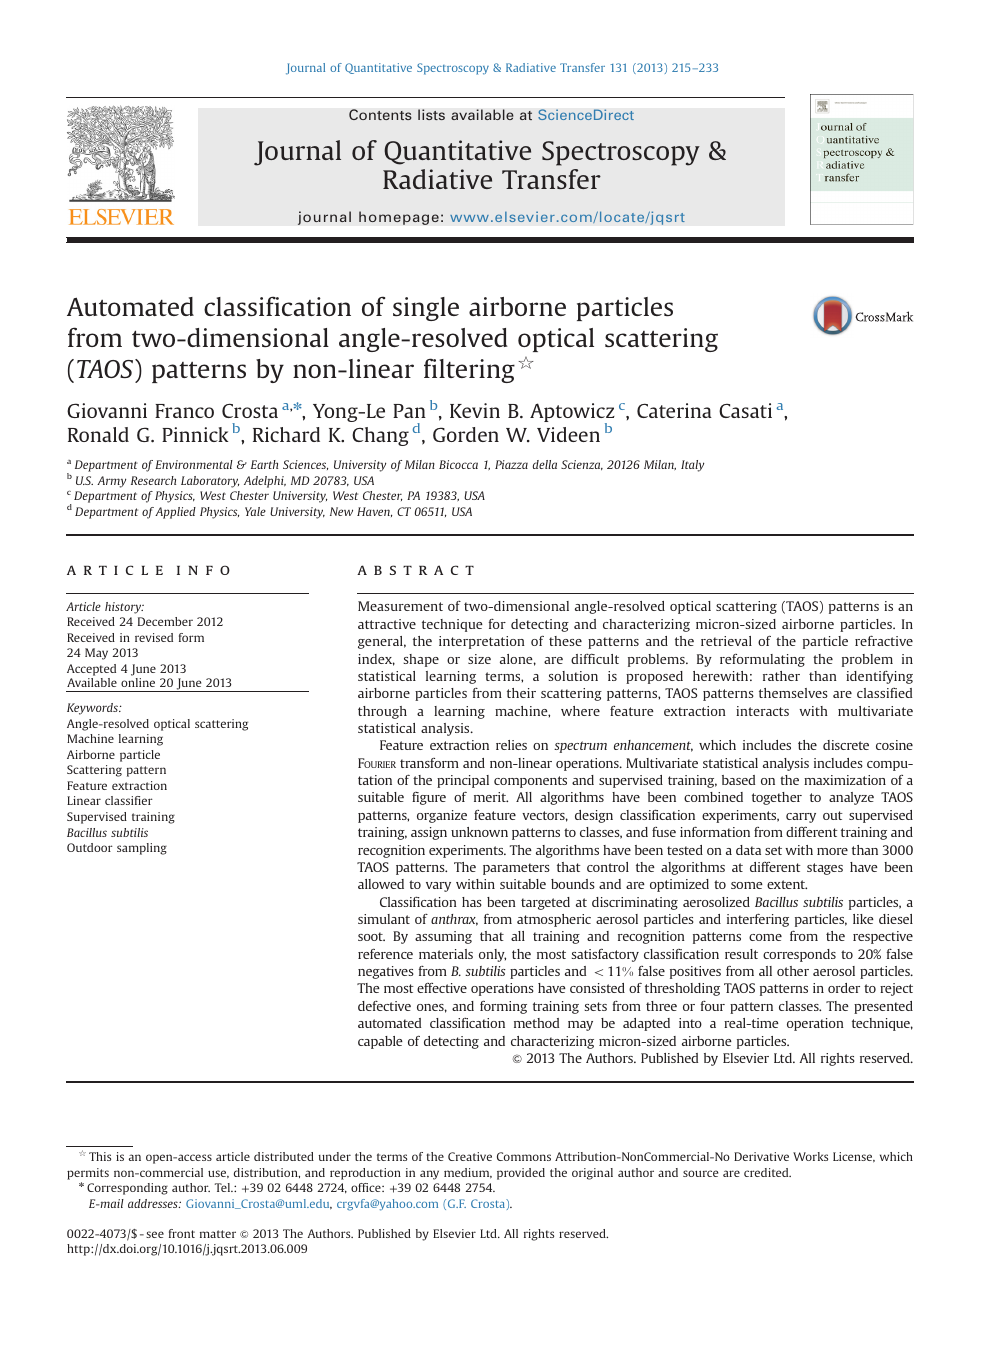 Automated classification of single airborne particles from